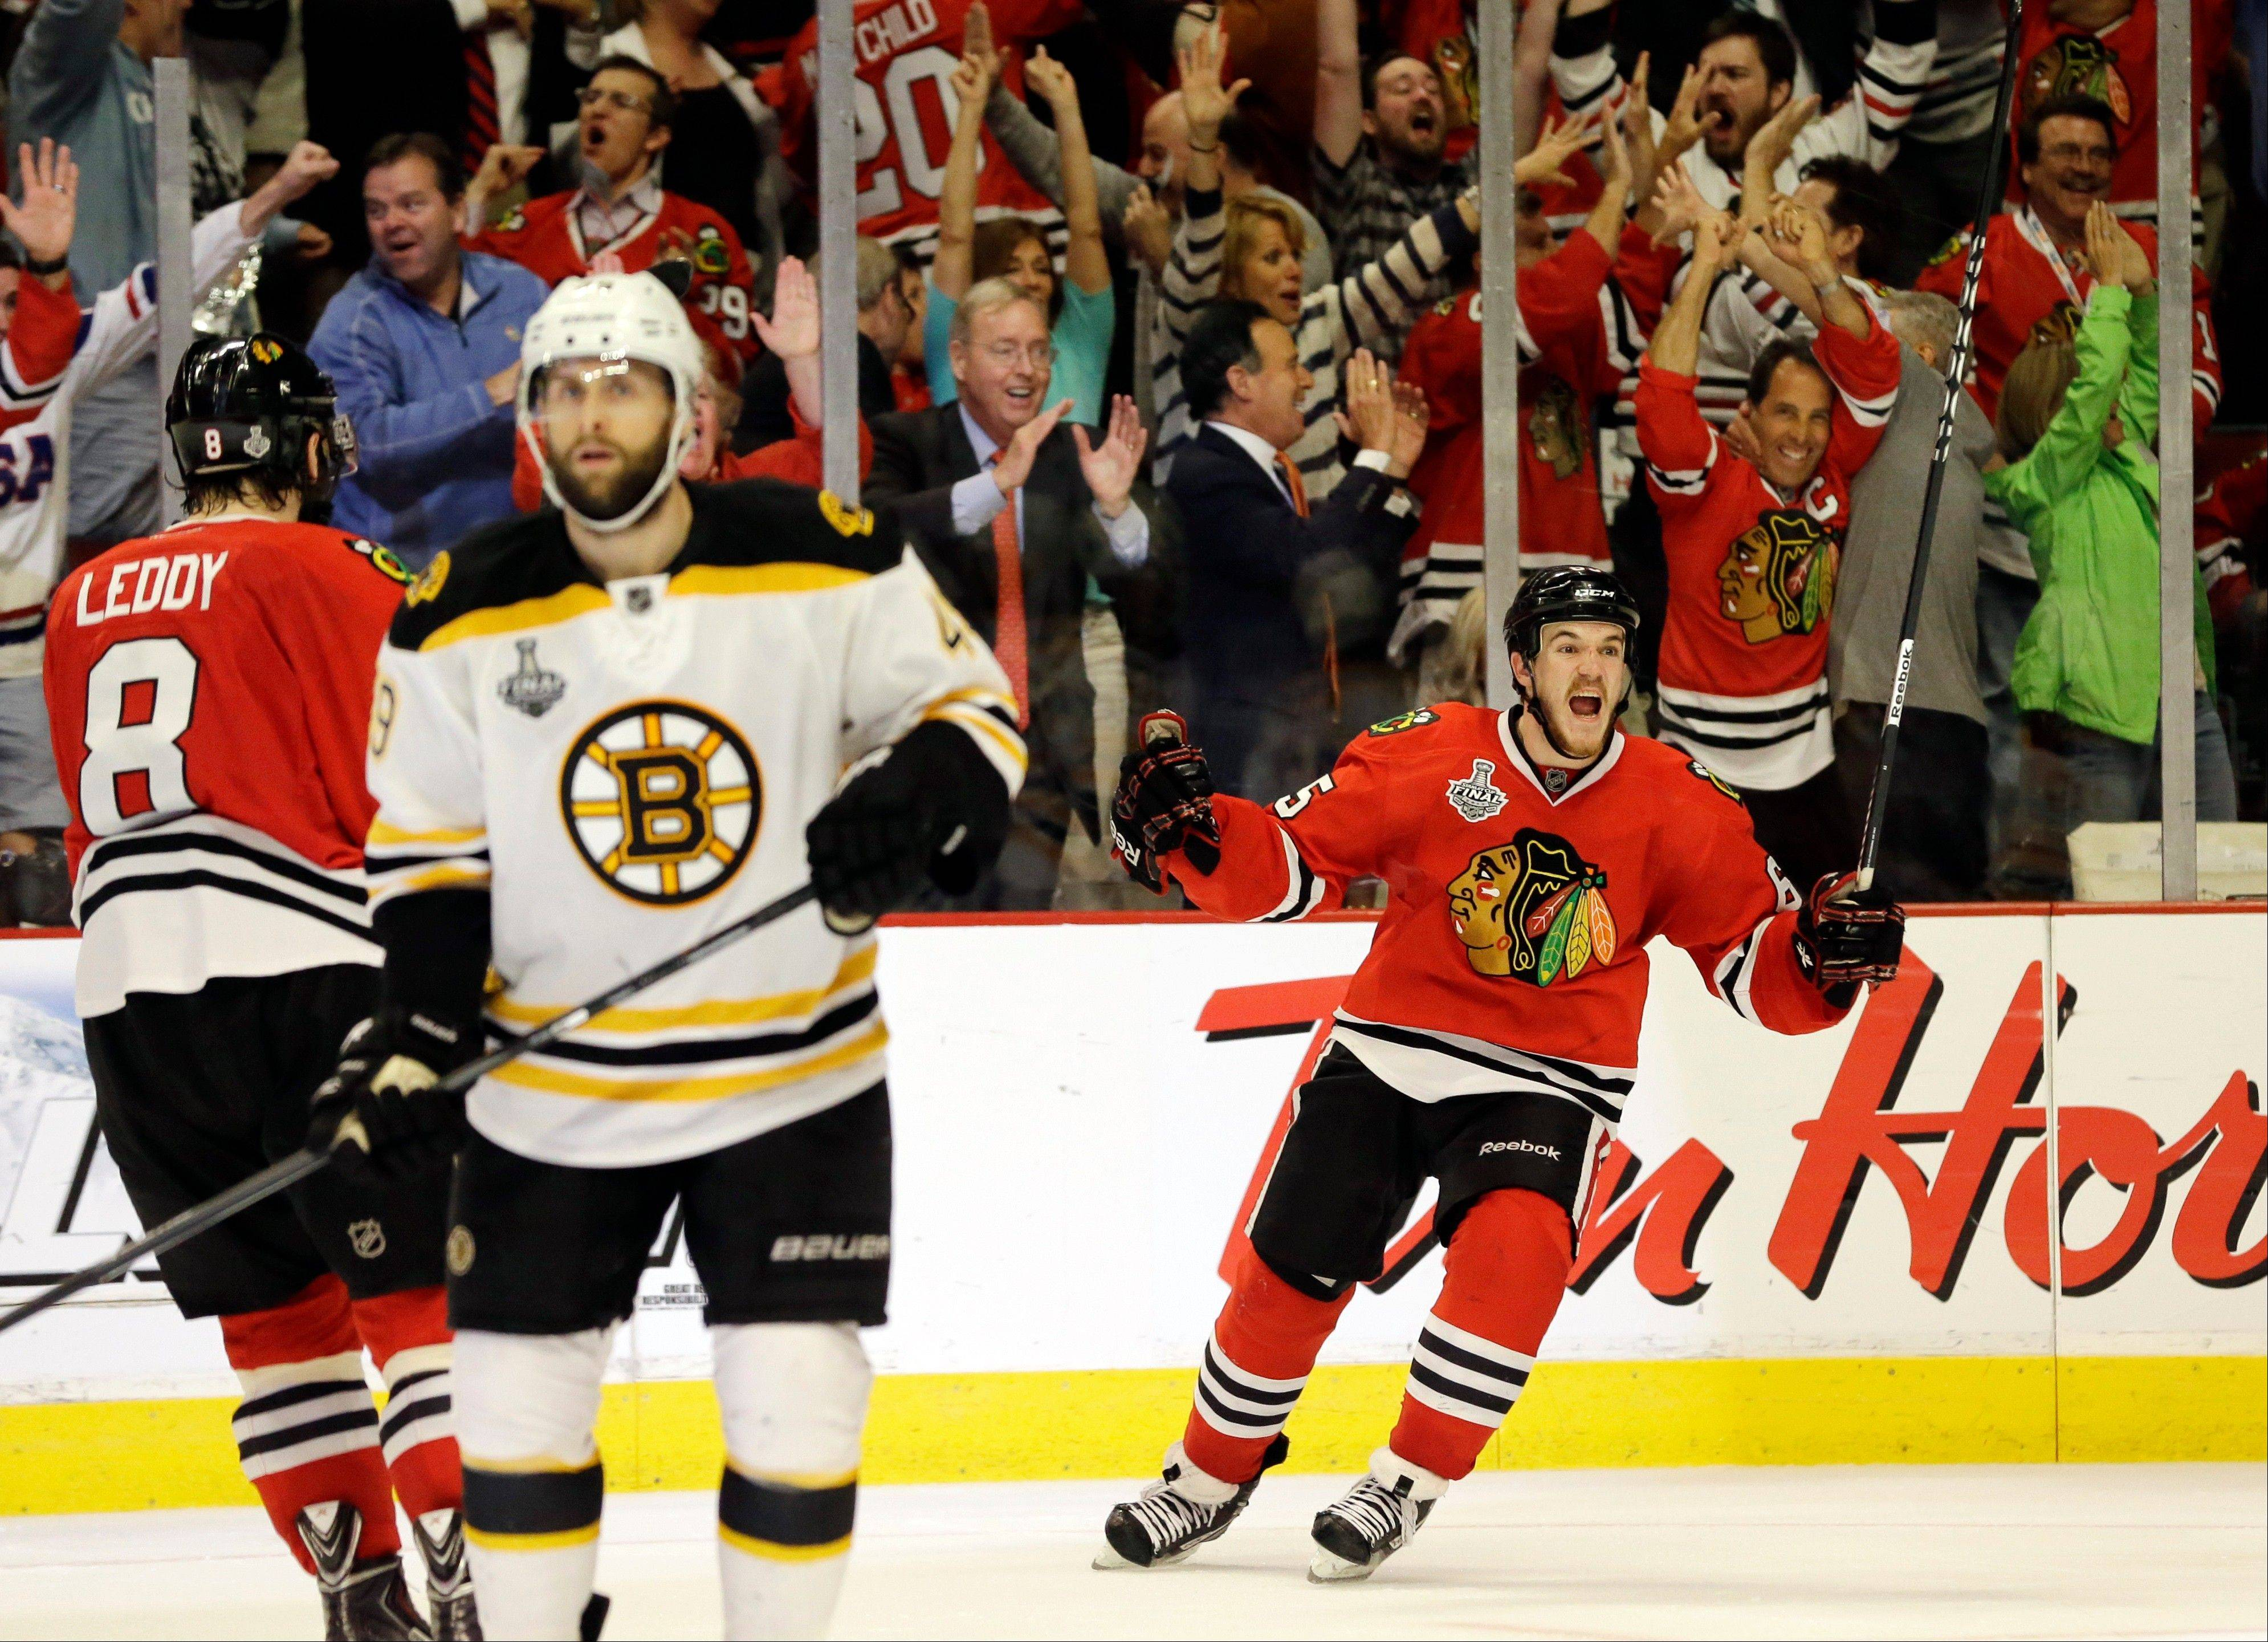 Chicago Blackhawks center Andrew Shaw, right, celebrates after scoring the winning goal during the third overtime period of Game 1 in their NHL Stanley Cup Final hockey series against the Boston Bruins, Thursday, June 13, 2013, in Chicago.